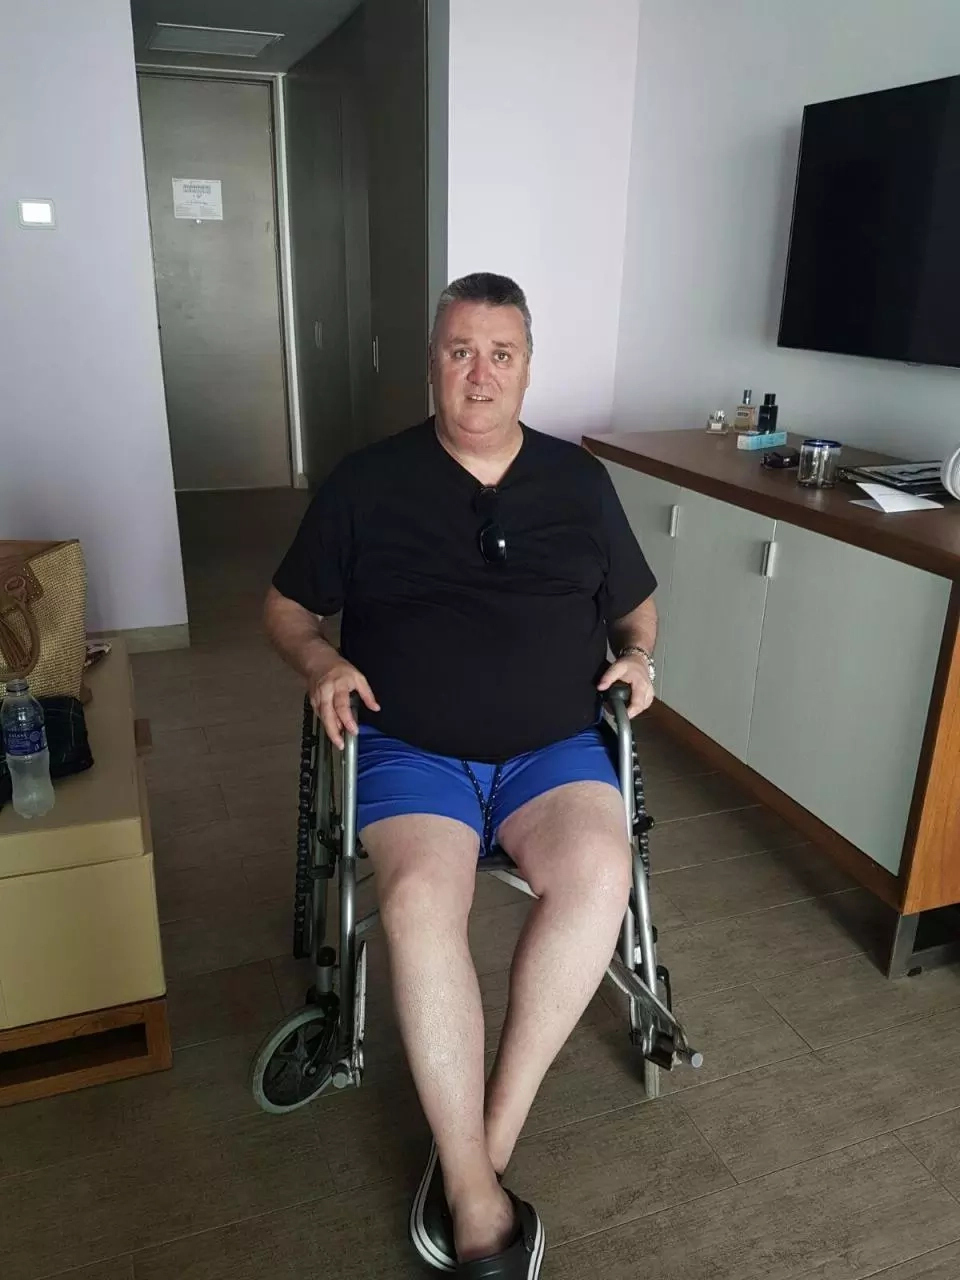 Health and safety expert 'housebound' after slipping on wet path on Caribbean hol